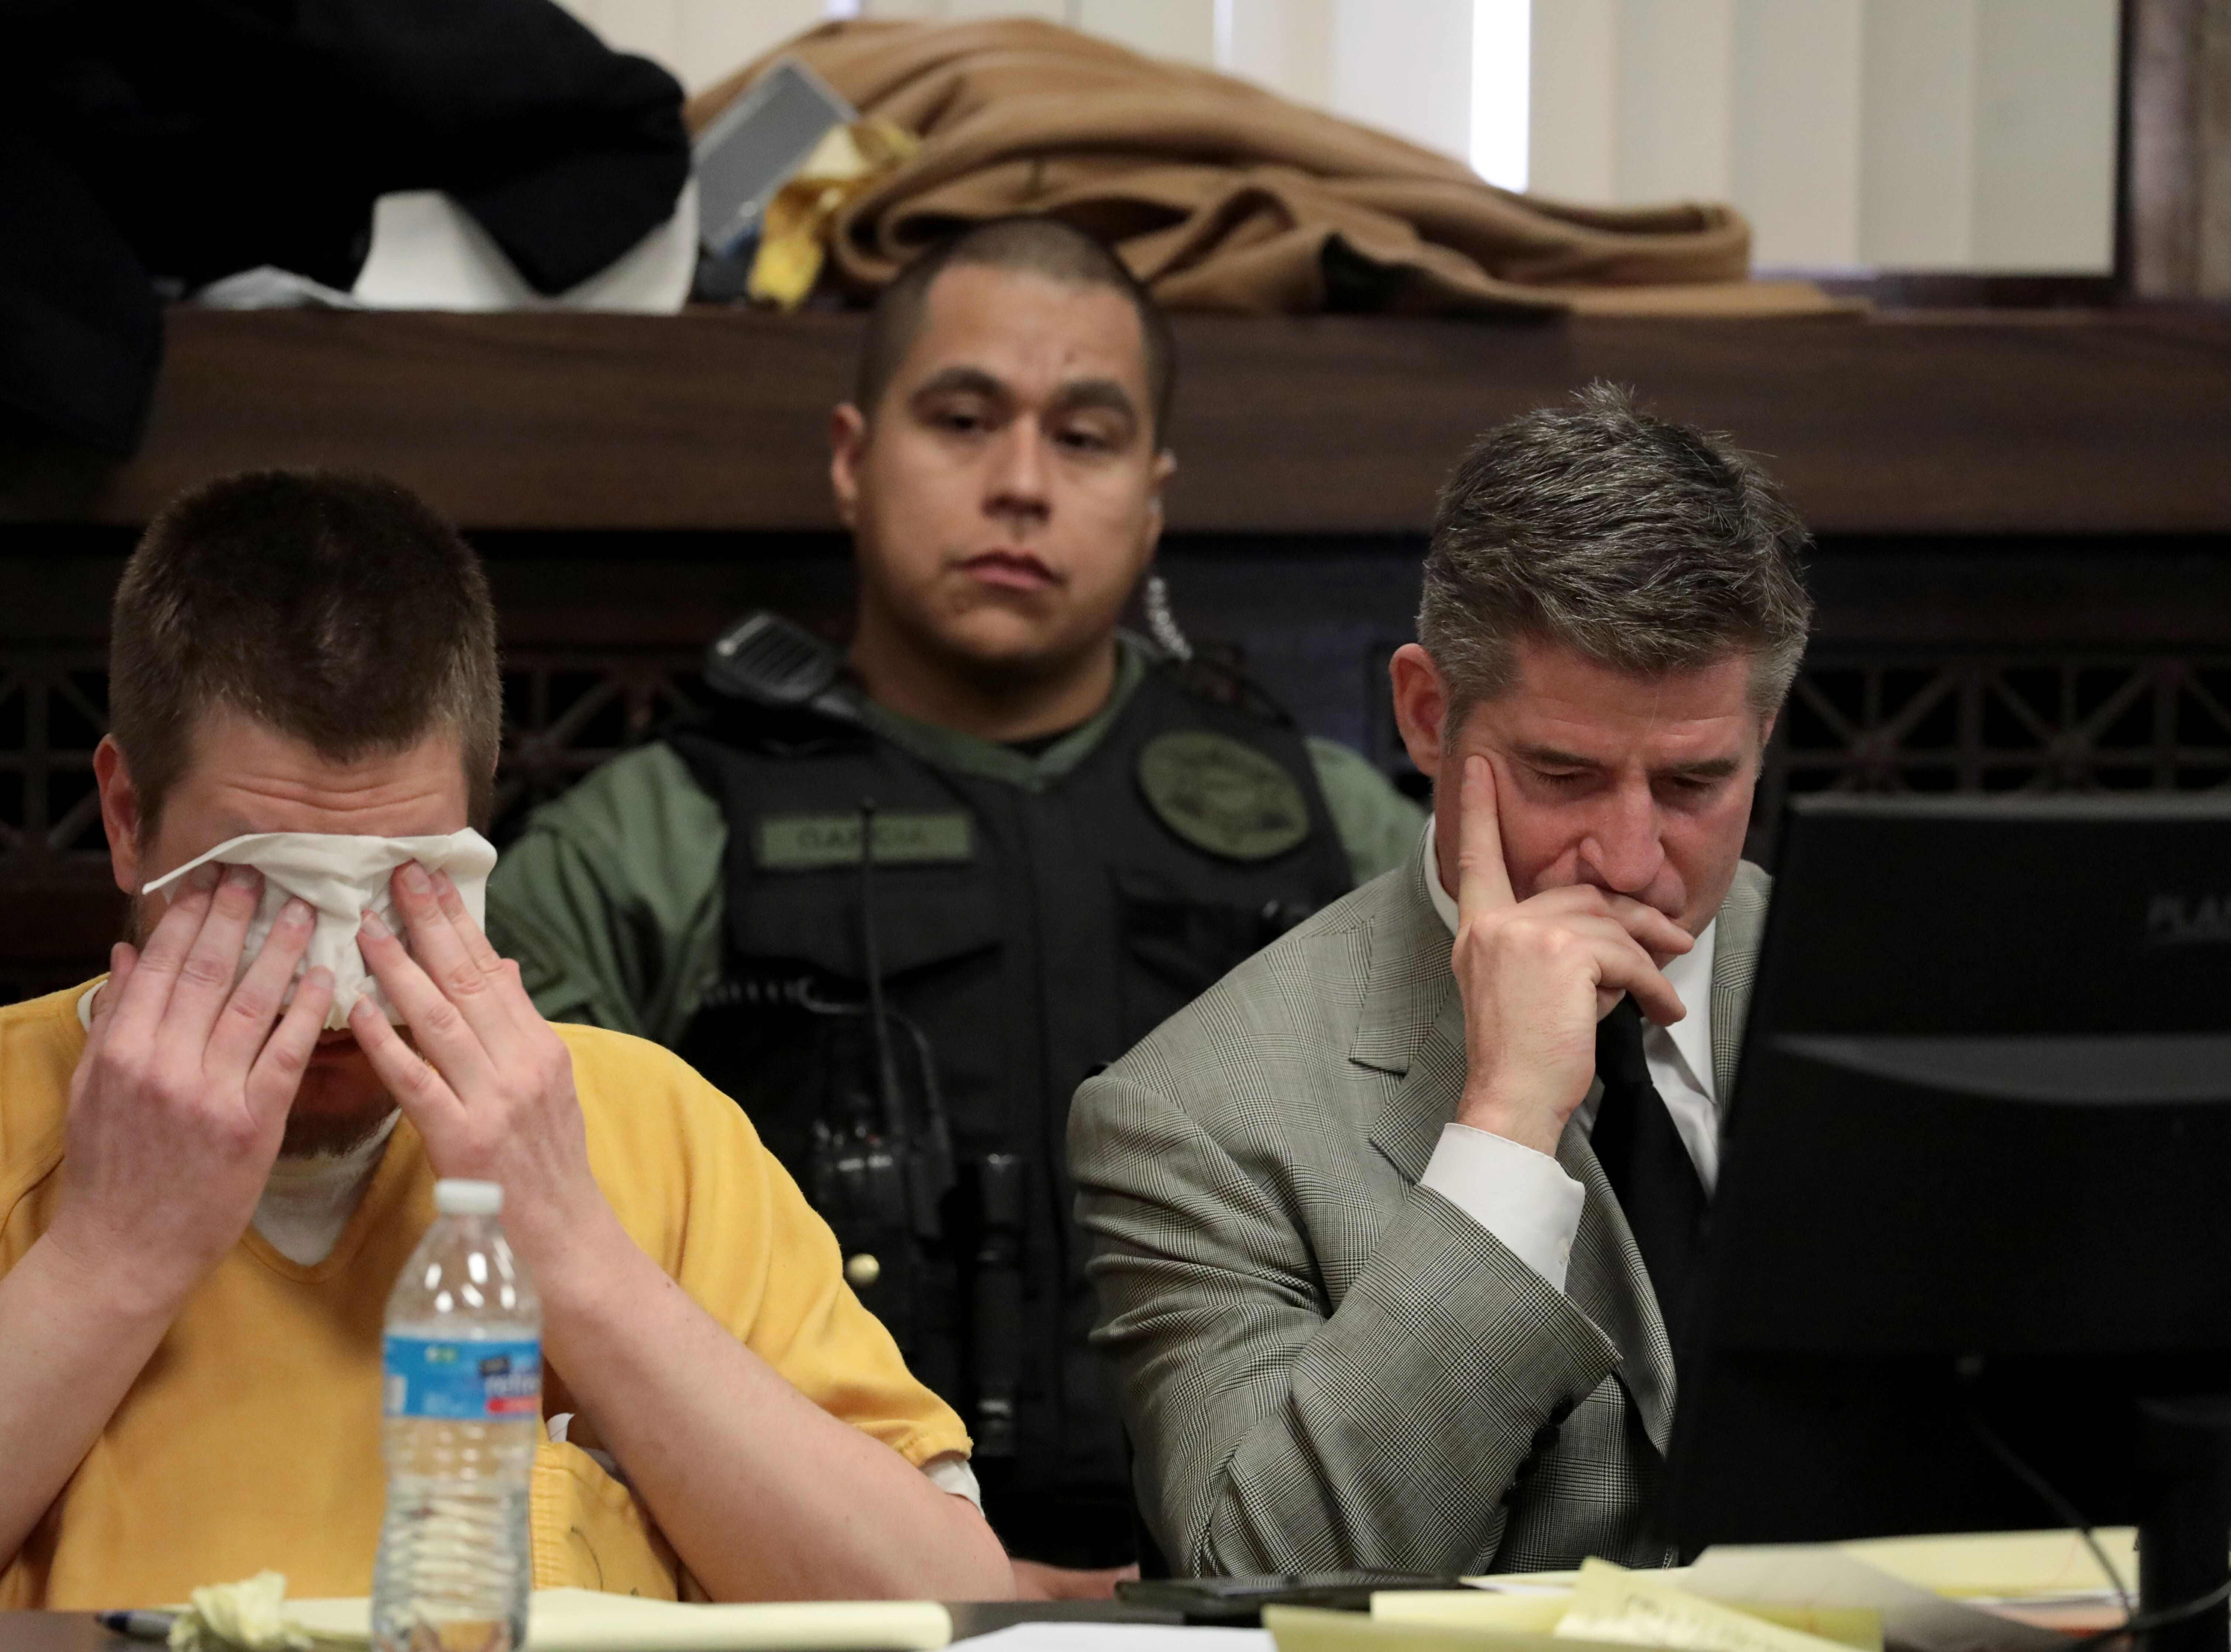 Former Chicago police Officer Jason Van Dyke, left,reacts during his sentencing hearing at the Leighton Criminal Court Building on Jan. 18, 2019 in Chicago. Van Dyke was sentenced to six years and nine months for the 2014 fatal shooting of 17-year-old African-American Laquan McDonald.